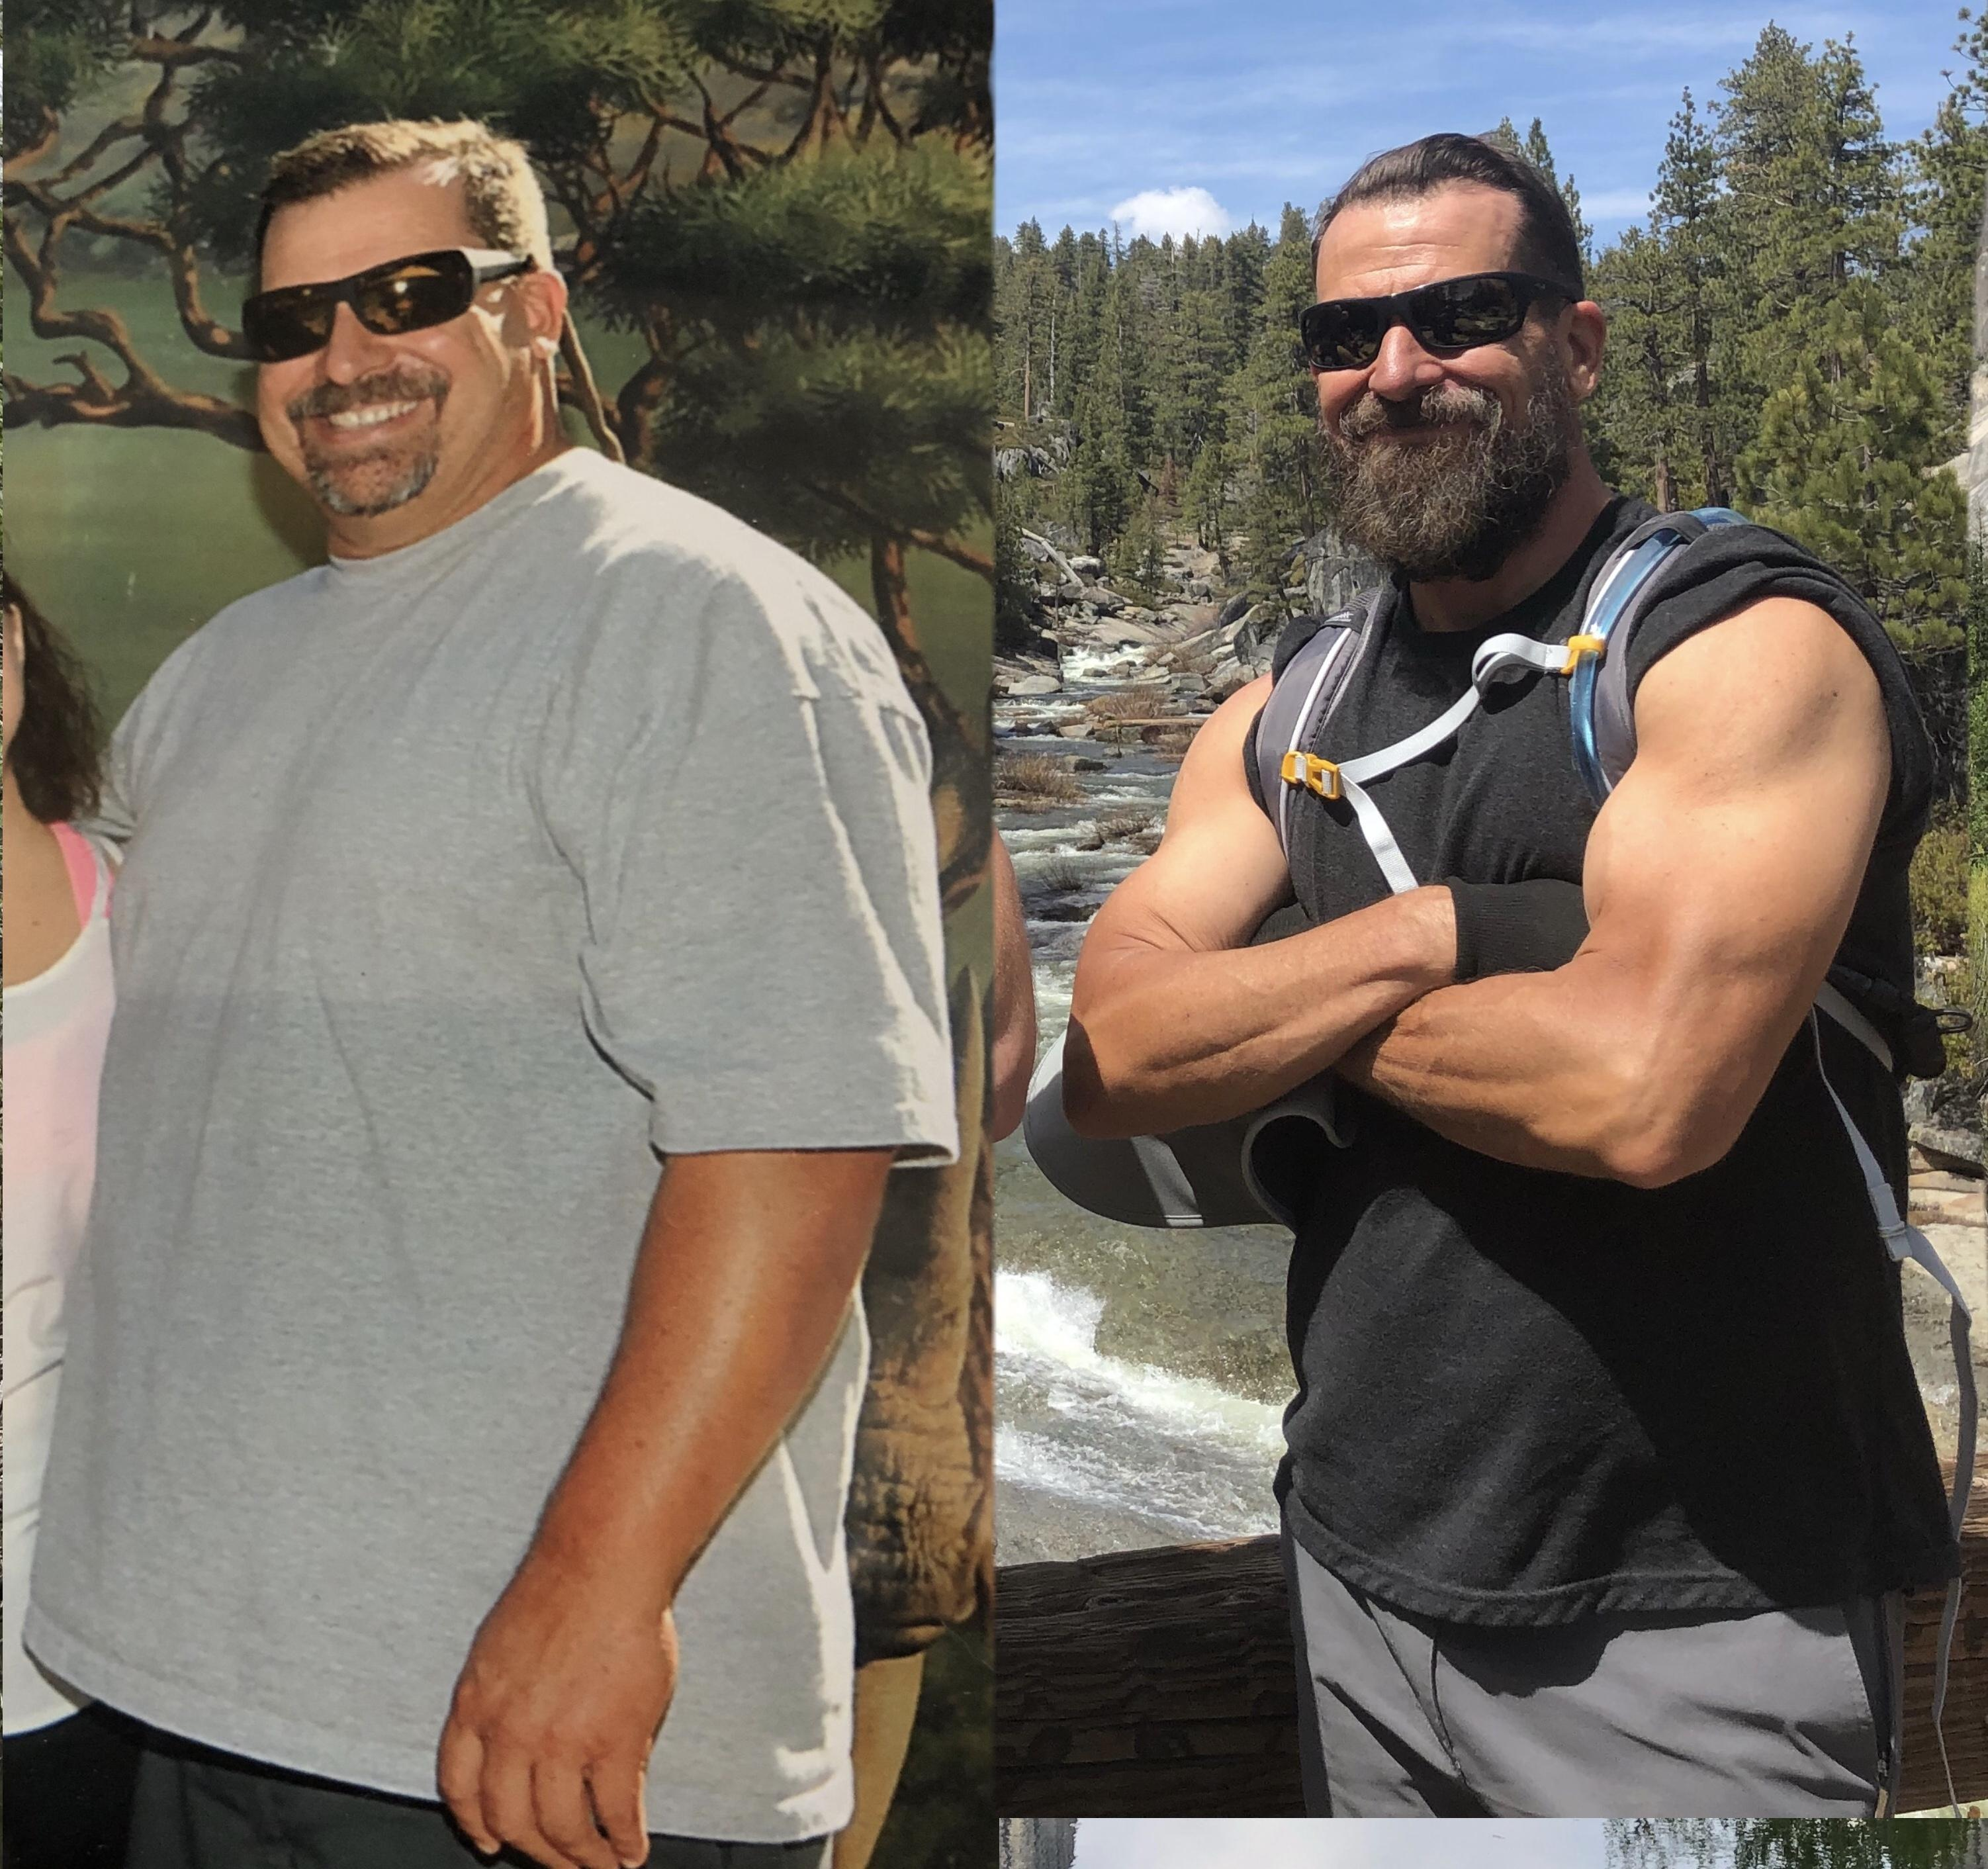 Before and After 93 lbs Weight Loss 6 foot 3 Male 300 lbs to 207 lbs